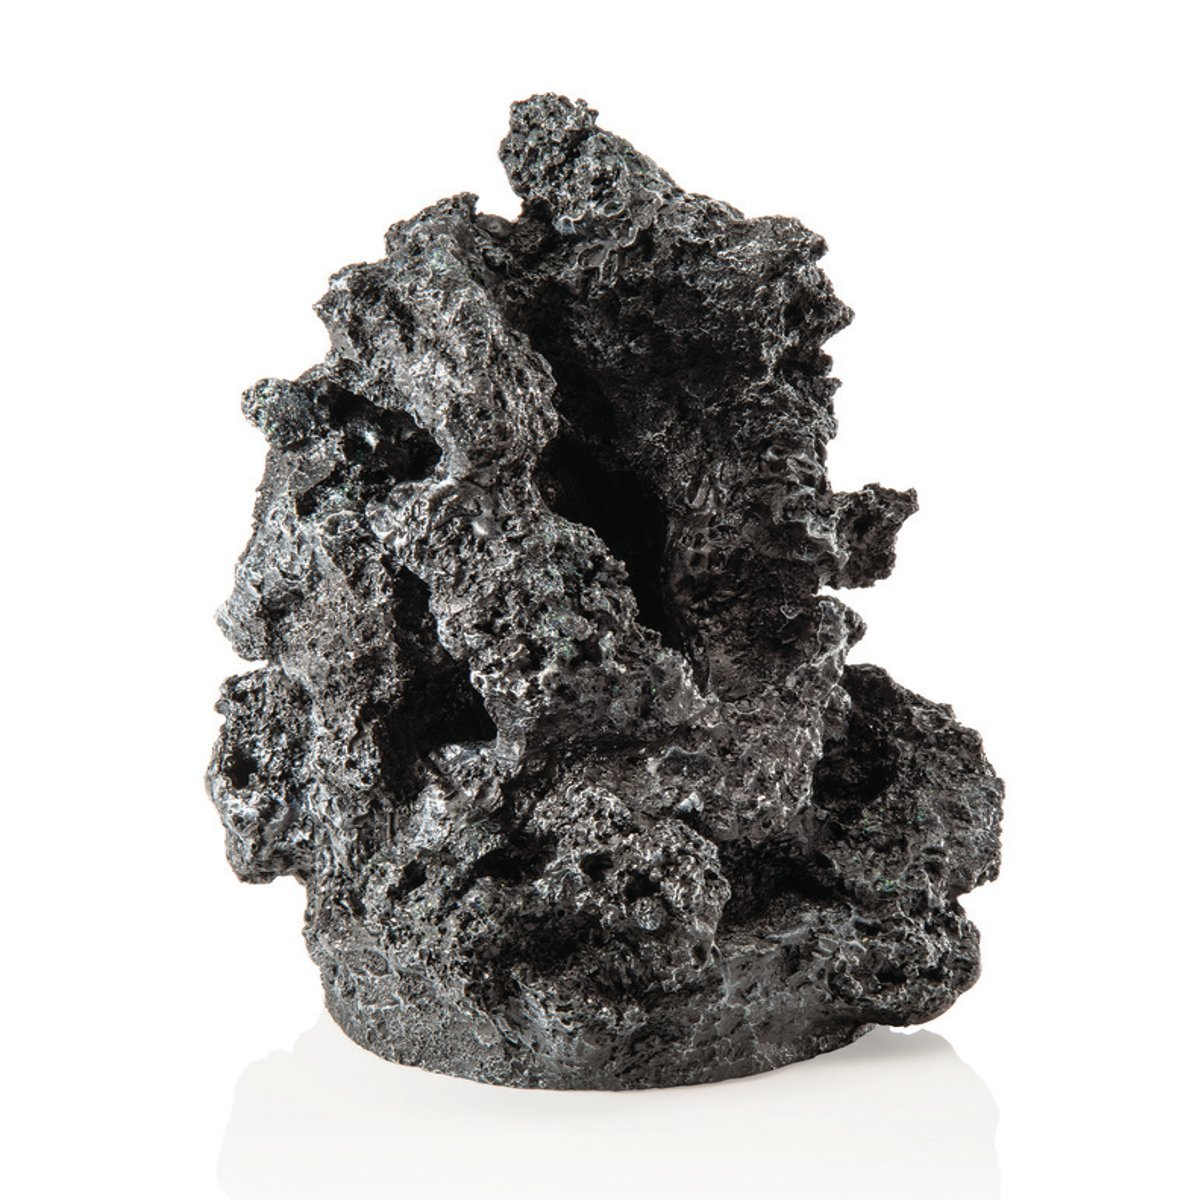 biOrb Black Mineral Stone Ornament by biOrb